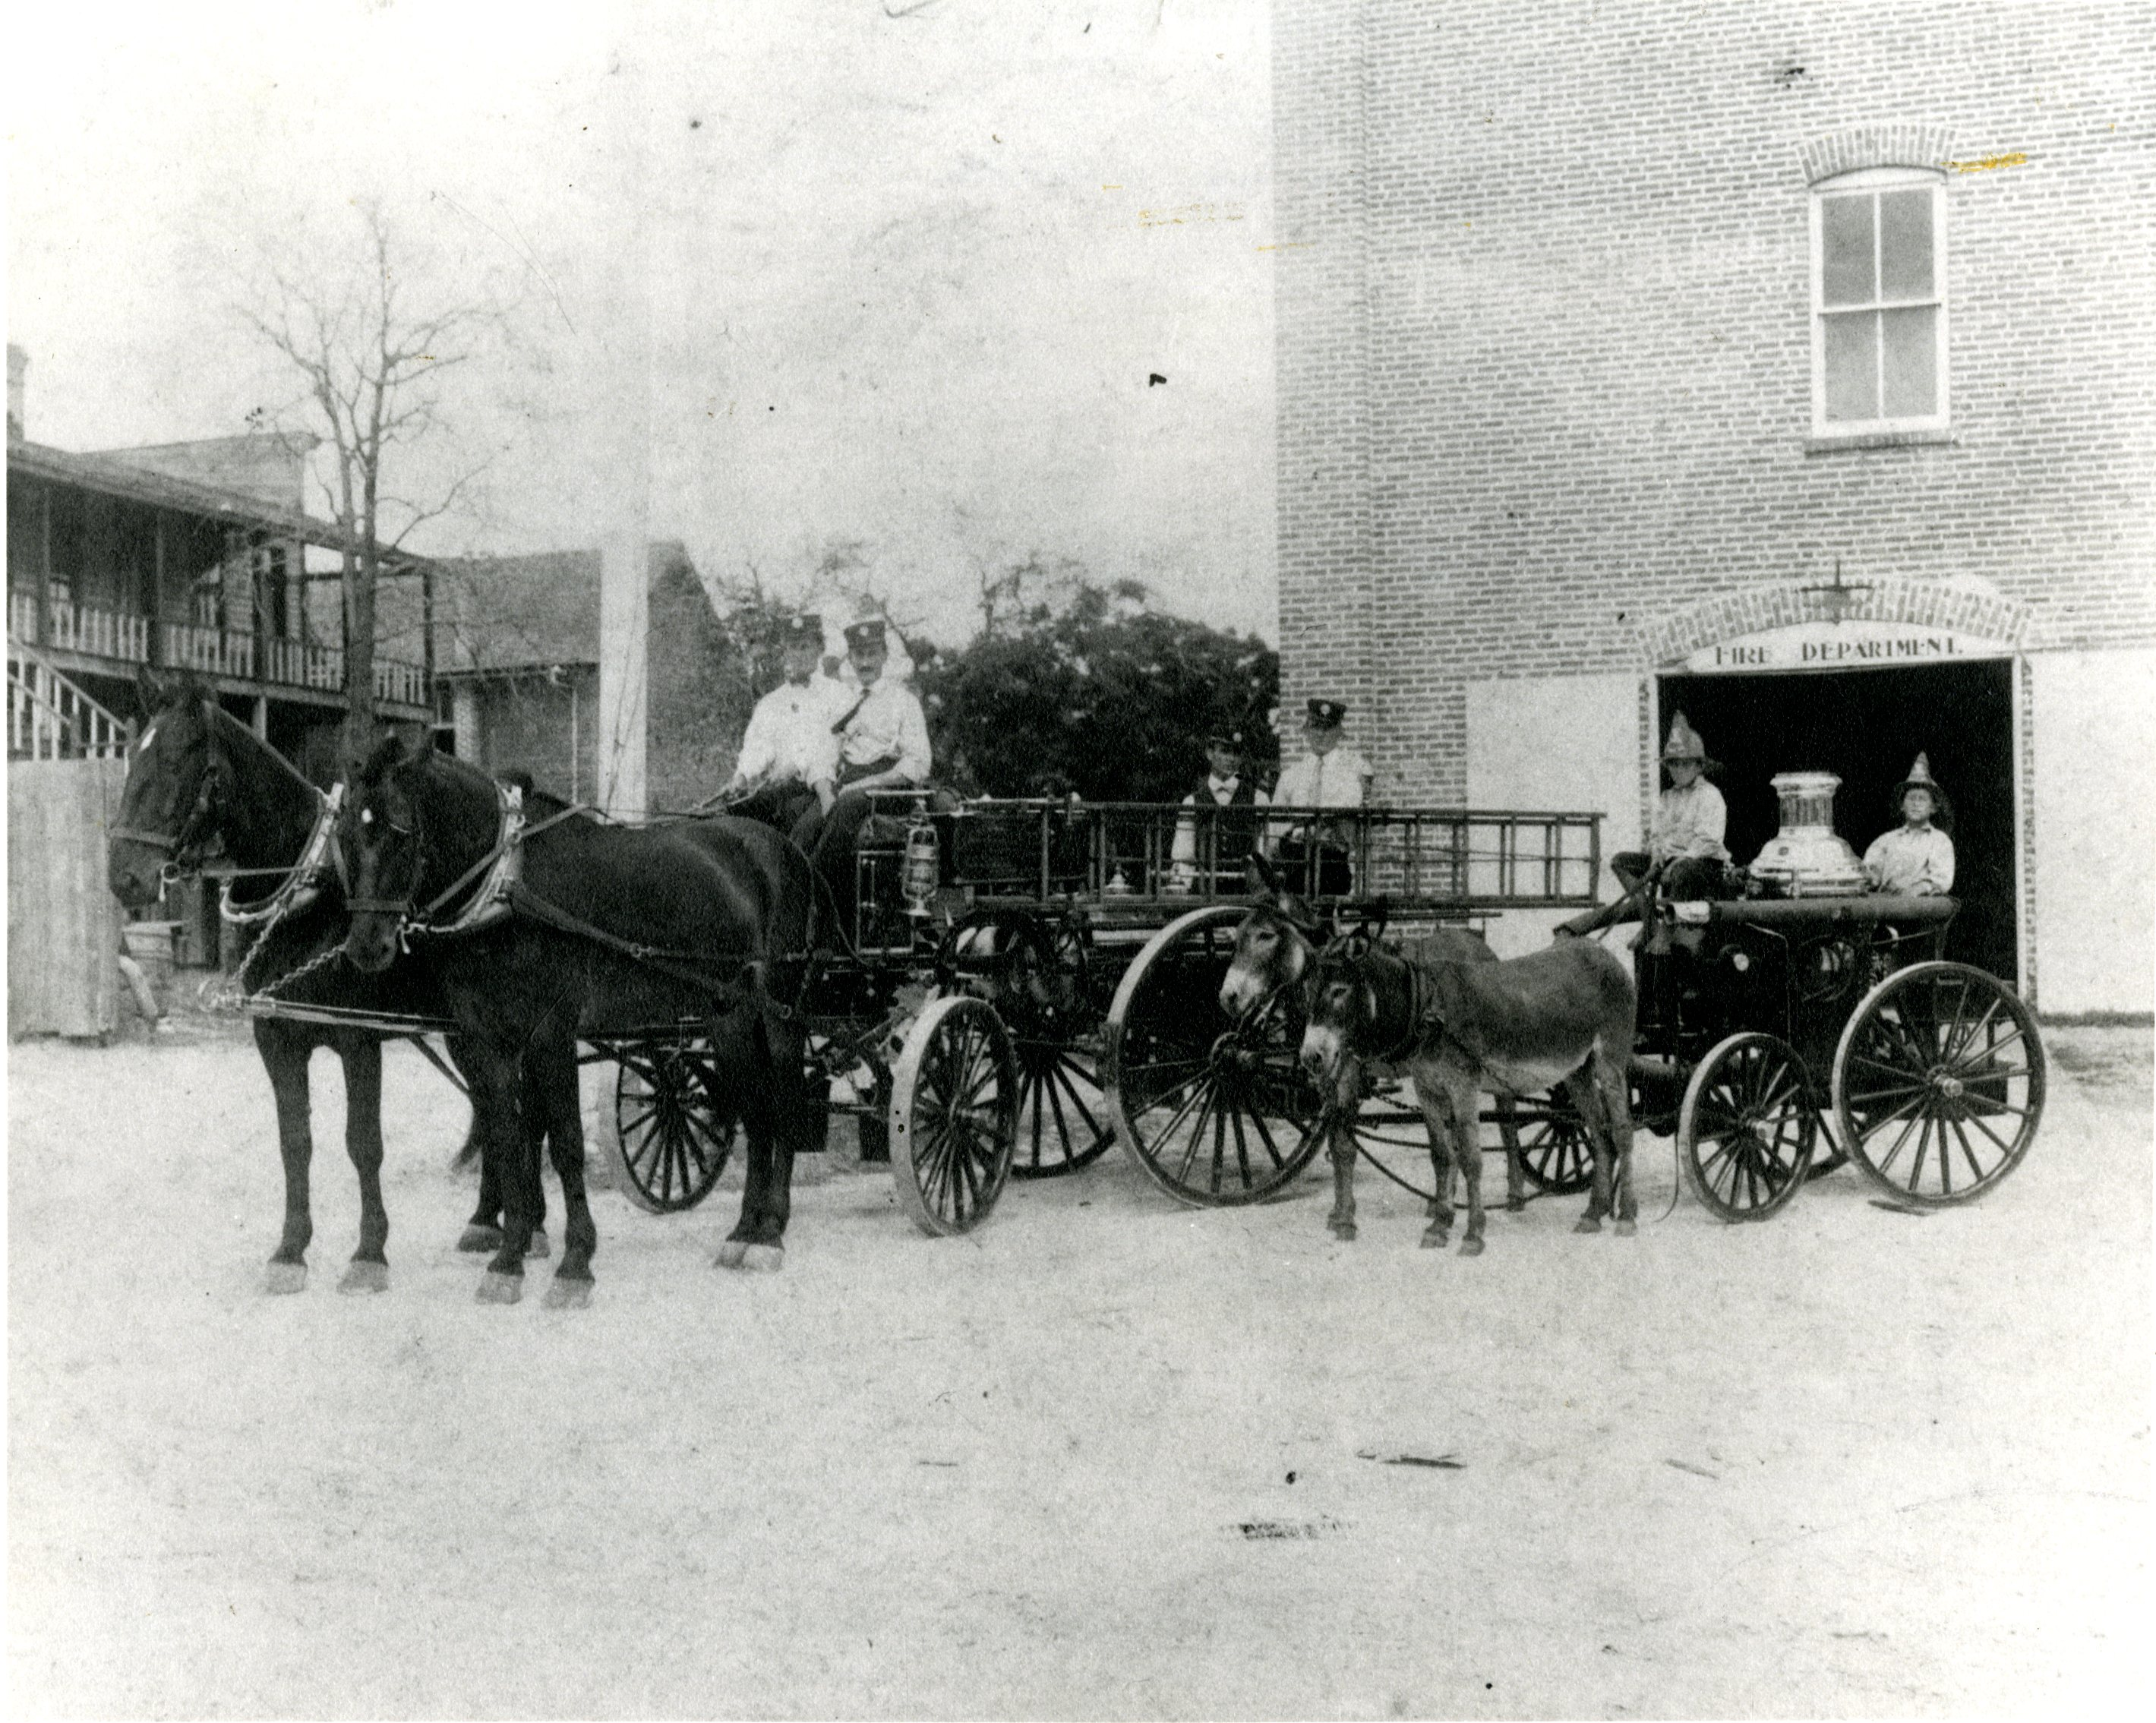 Fire Chief Anderson and firemen in horse and mule drawn fire engines, St. Petersburg, Florida, circa 1900.